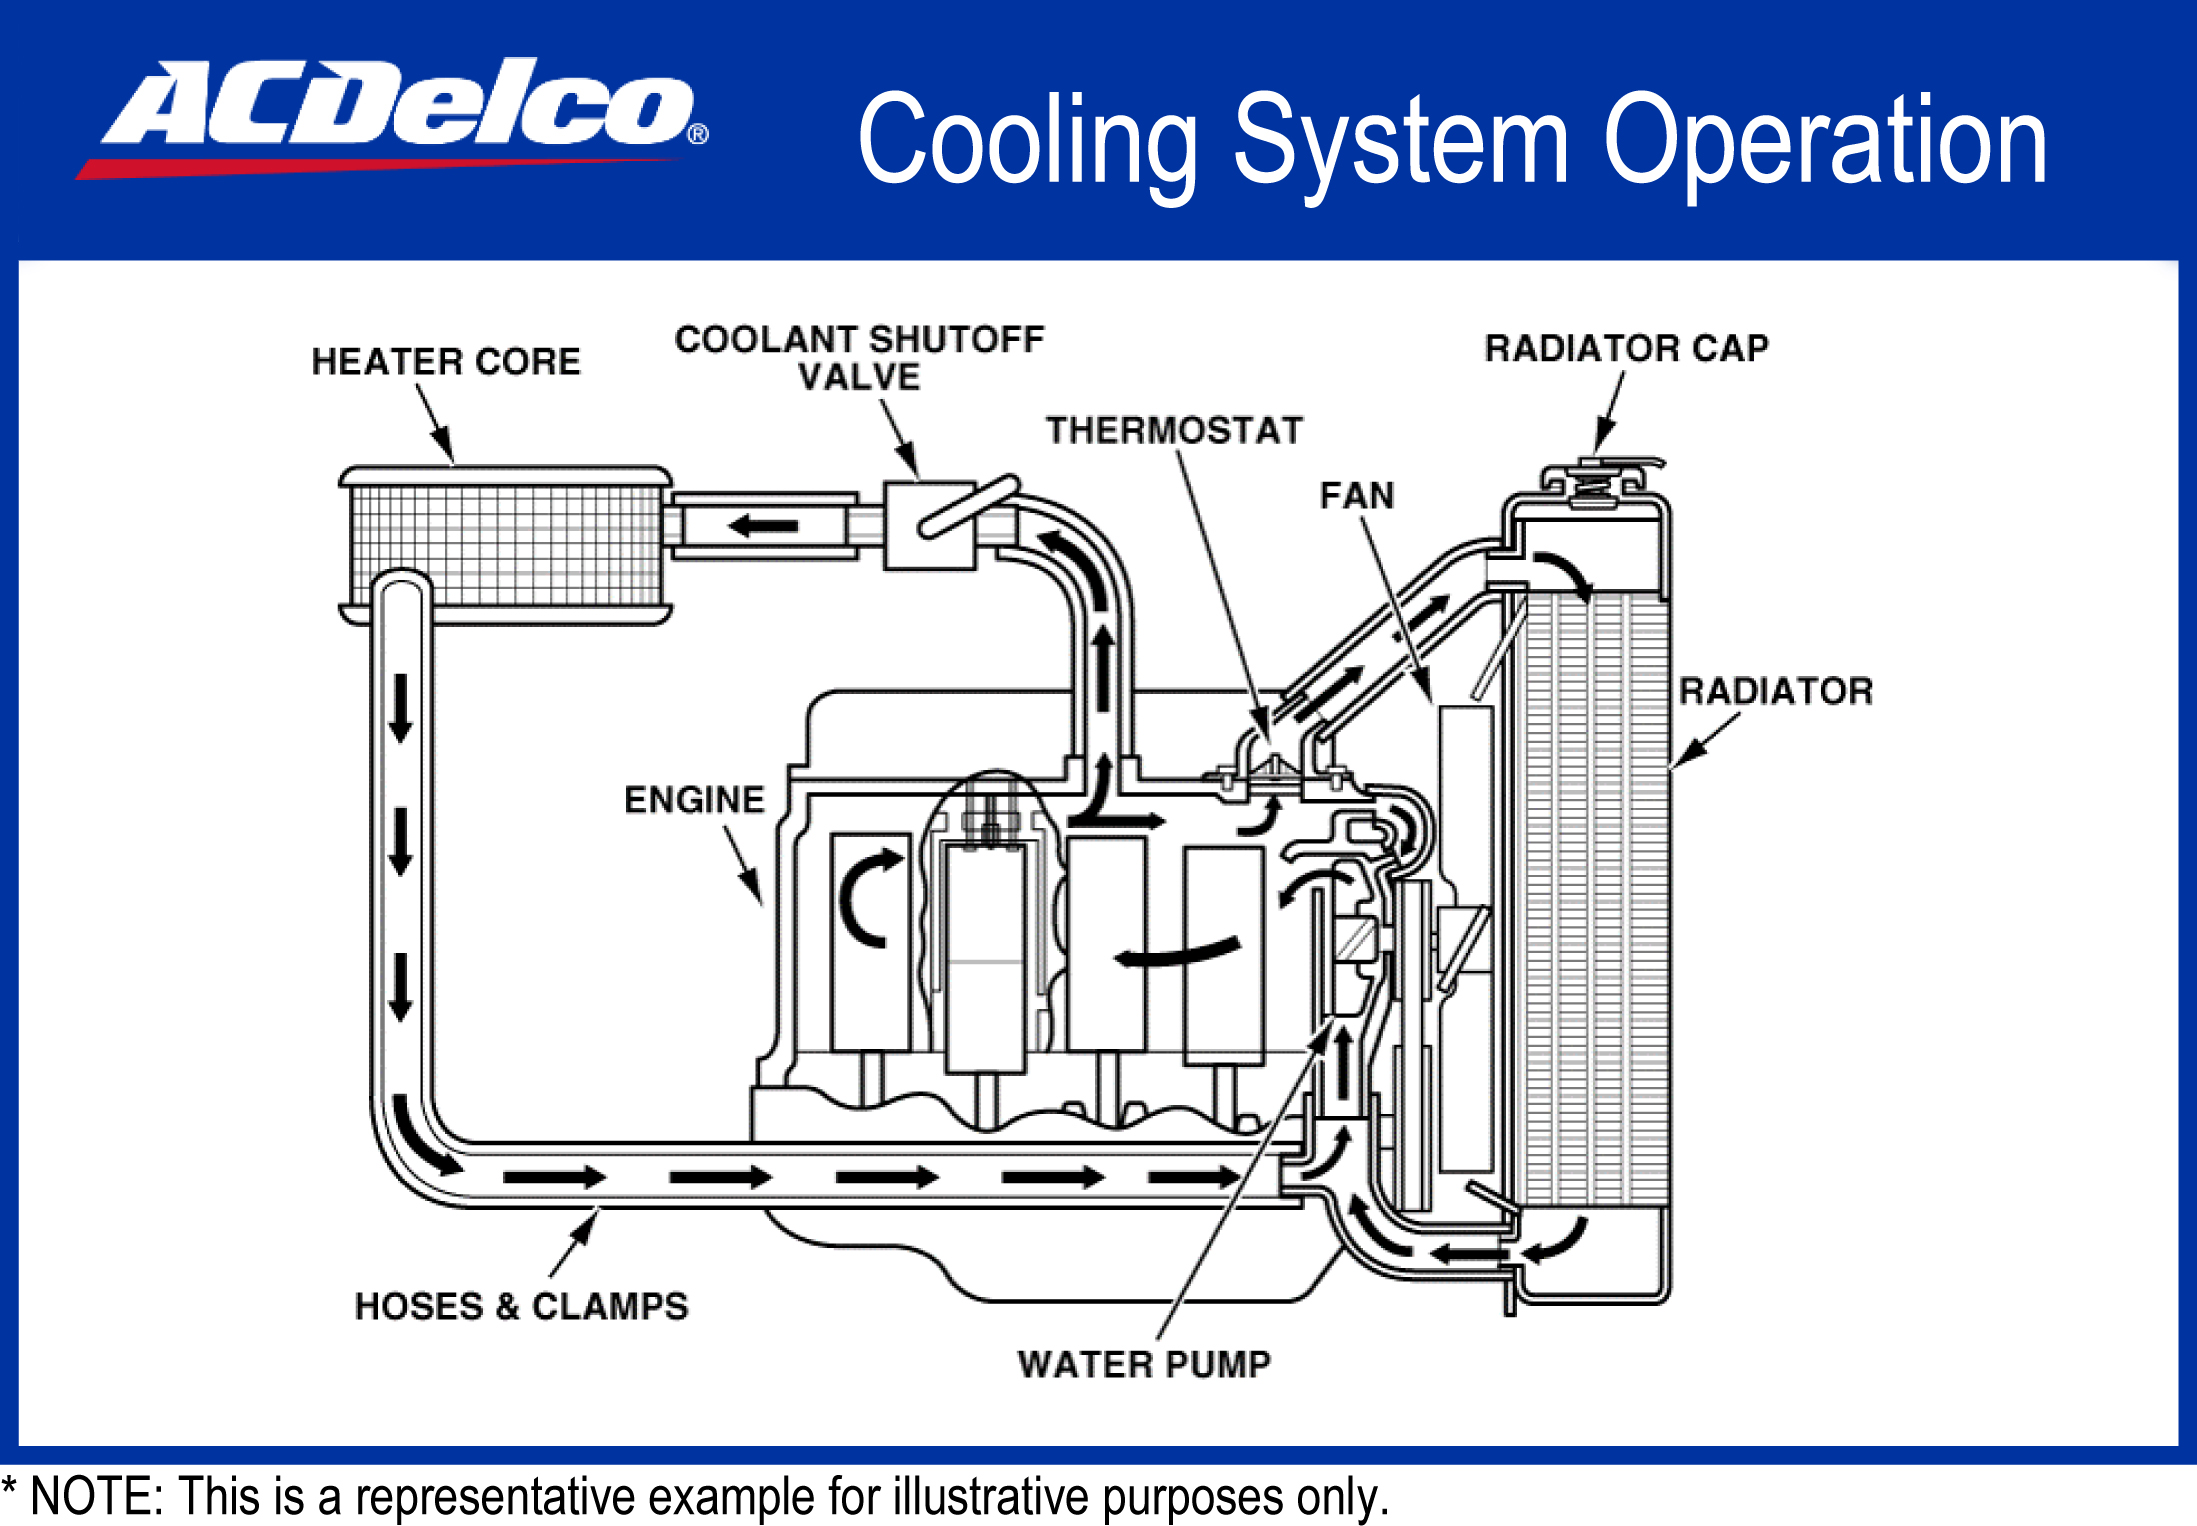 Operation Of Water Cooled Chiller | buckeyebride.com on v70 engine diagram, 2000 eclipse engine diagram, 2004 deville engine diagram, plymouth engine diagram, 2007 tahoe engine diagram, 1998 catera engine diagram, mustang 5.0 engine diagram, lincoln continental engine diagram, skoda engine diagram, saab engine diagram, chrysler 3.5 engine diagram, mustang engine parts diagram, chevrolet impala engine diagram, geo engine diagram, cts engine diagram, 2011 mustang engine diagram, chevrolet spark engine diagram, gmc engine diagram, smart engine diagram, north star 4.6l engine diagram,